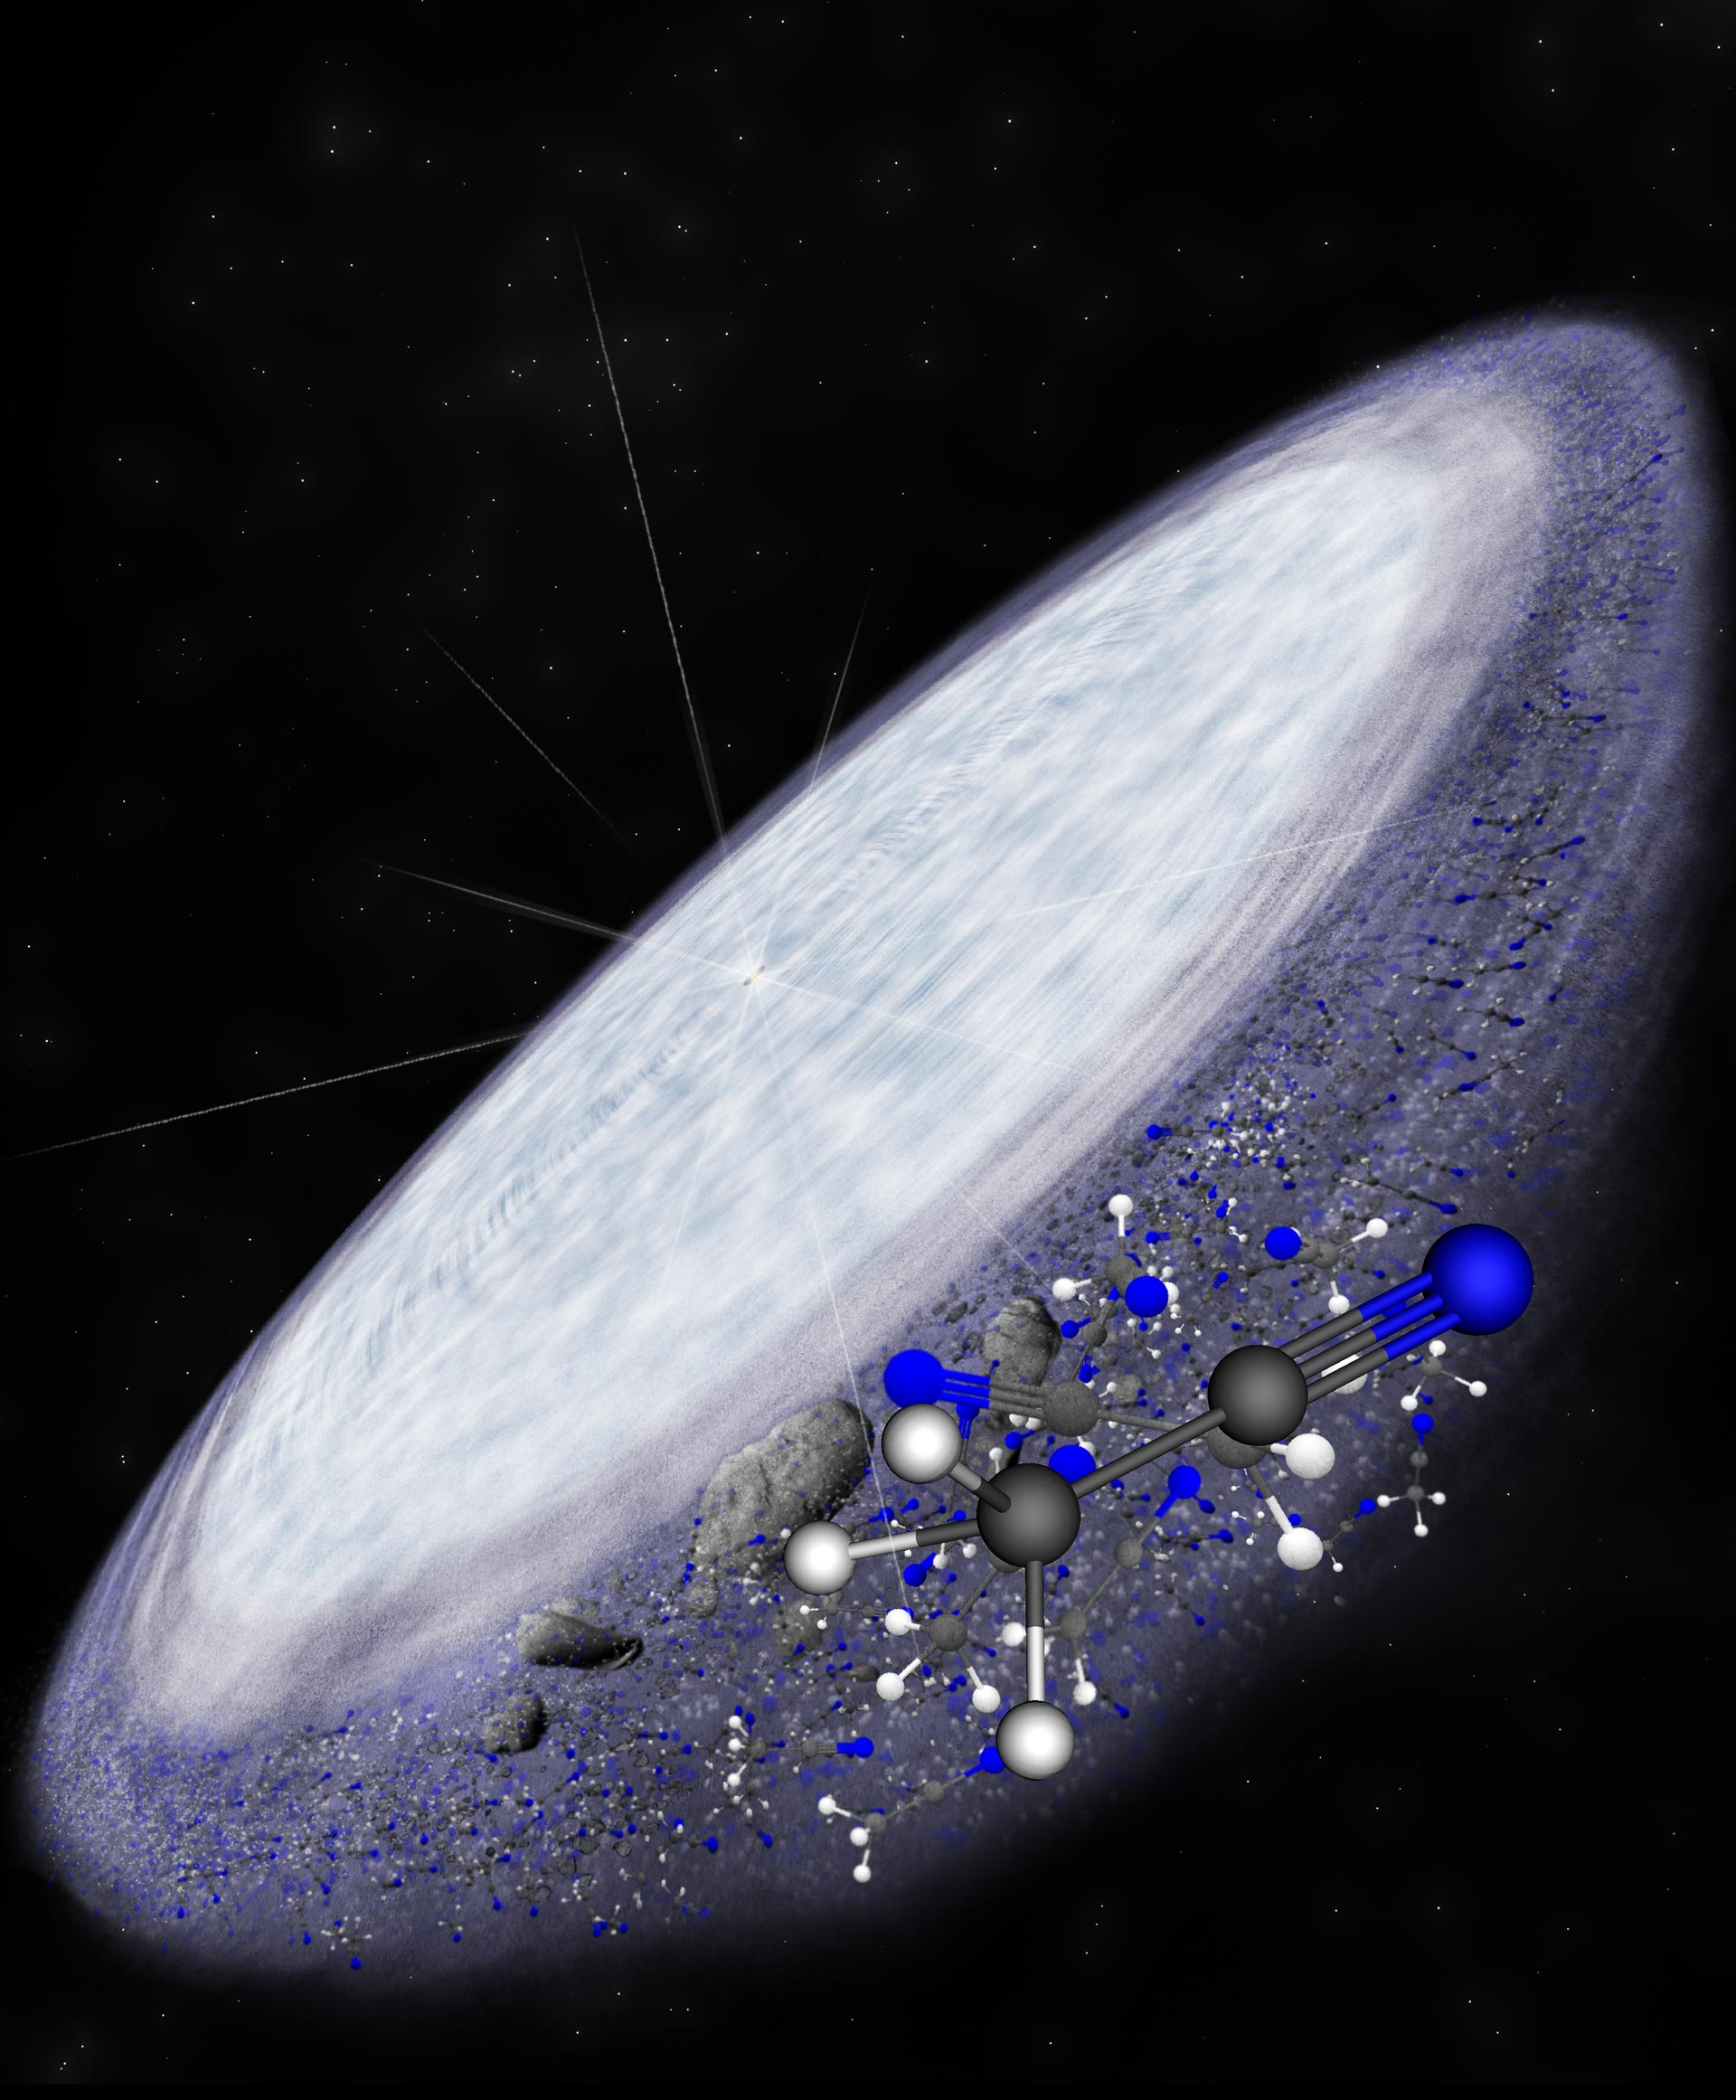 Illustration of a protoplanetary disk around a young star MWC 480, with molecules in the foreground.